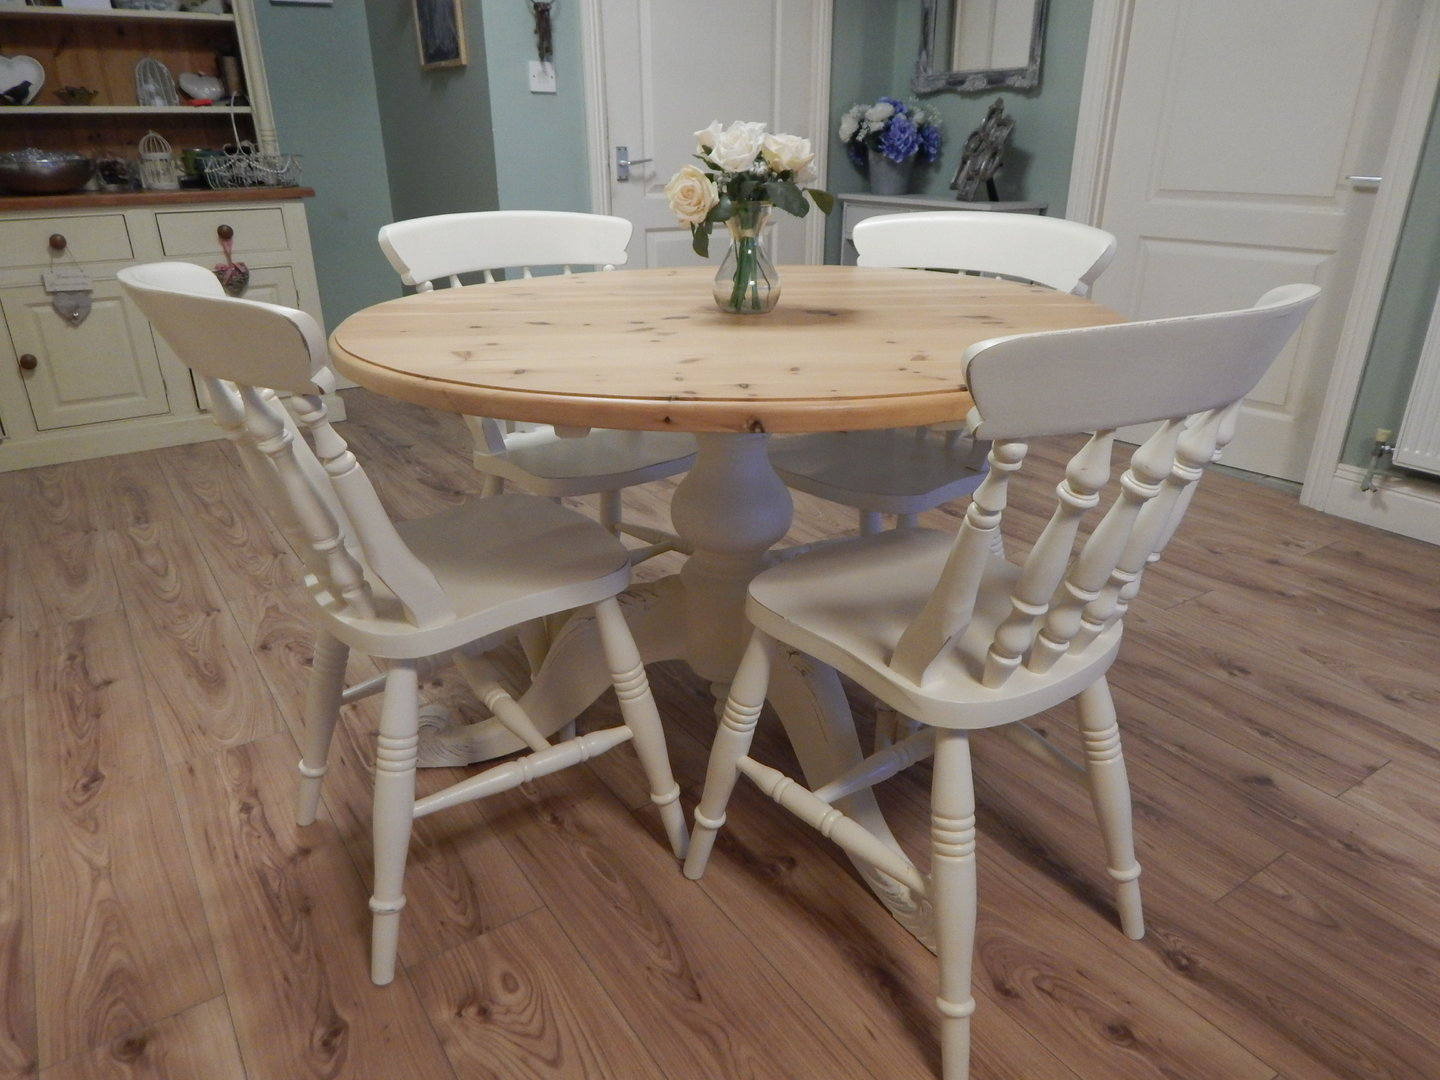 Vintage Round Shabby Chic Solid Pine Farmhouse Dining Table 4 Chairs Sold Moonstripe